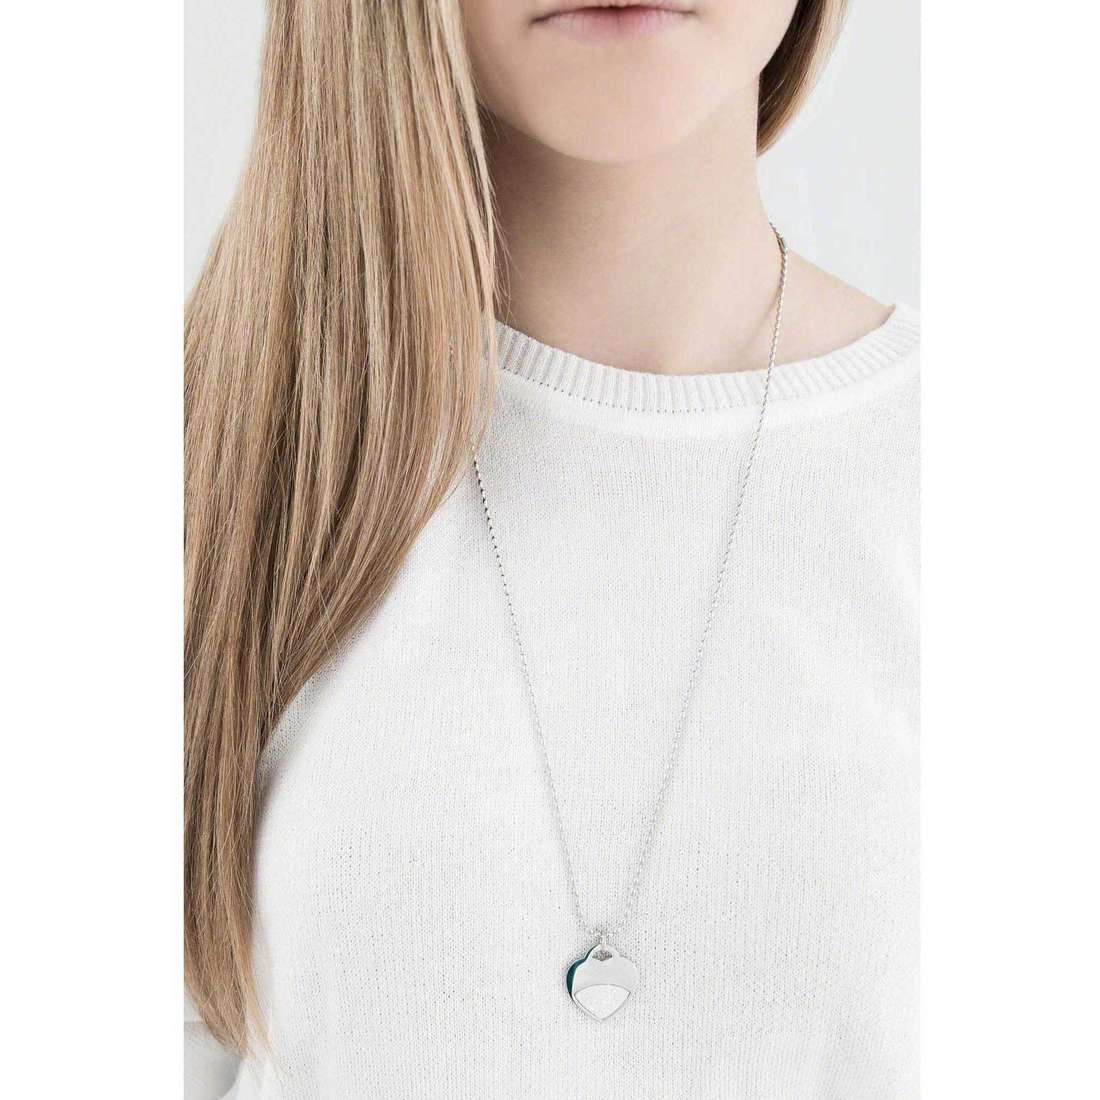 Ops Objects necklaces Glitter woman OPSCL-350 indosso